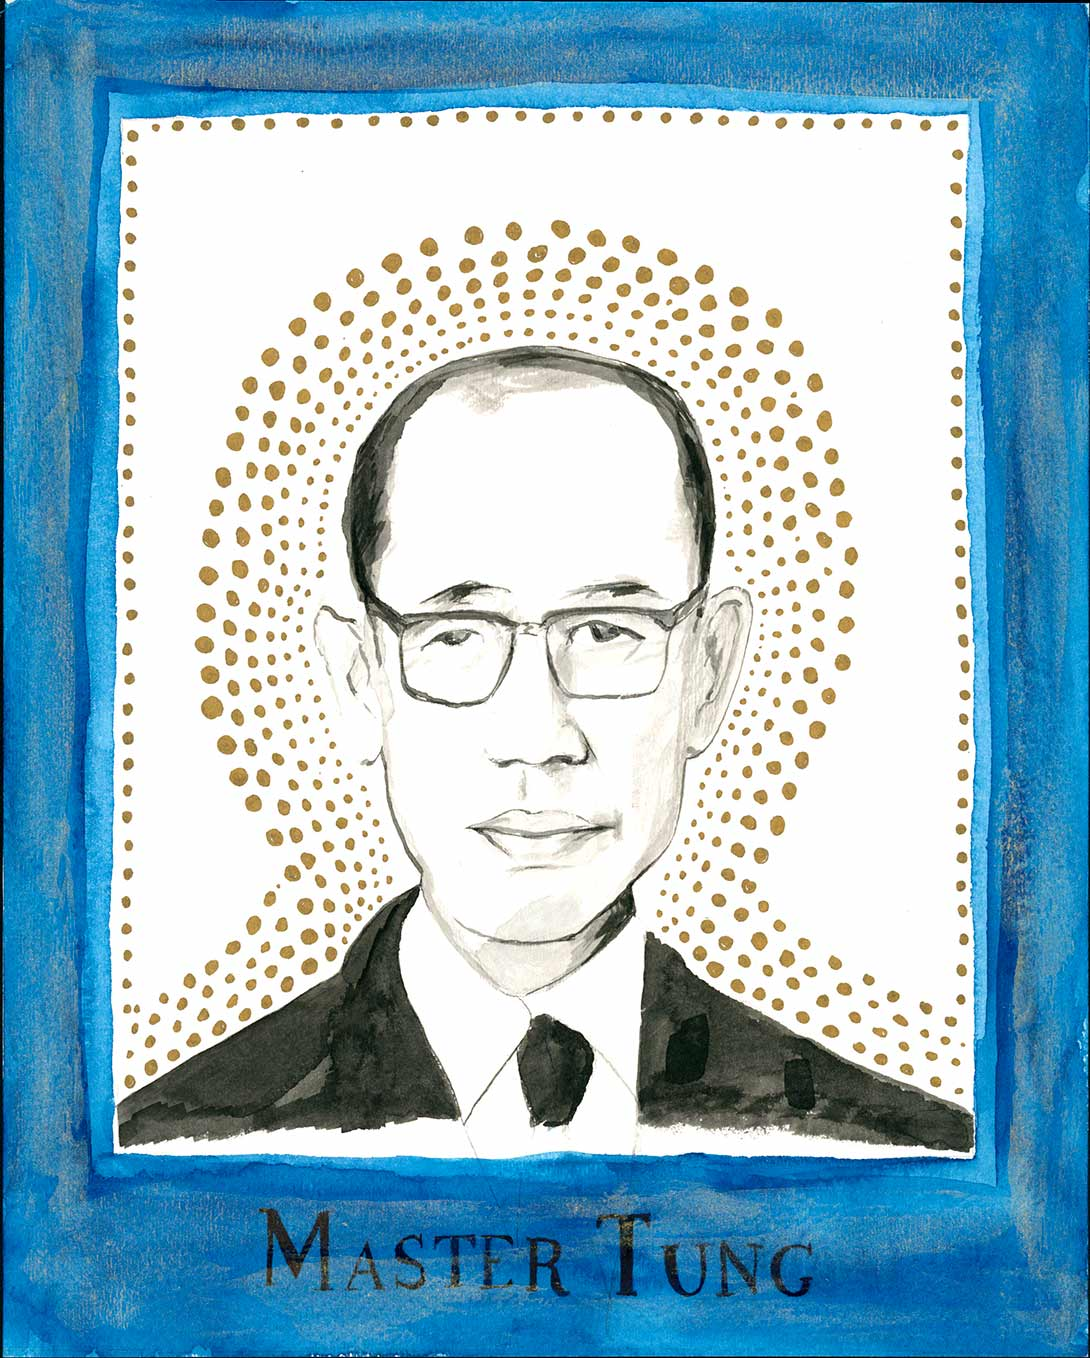 Drawn portrait of asian man with blue border